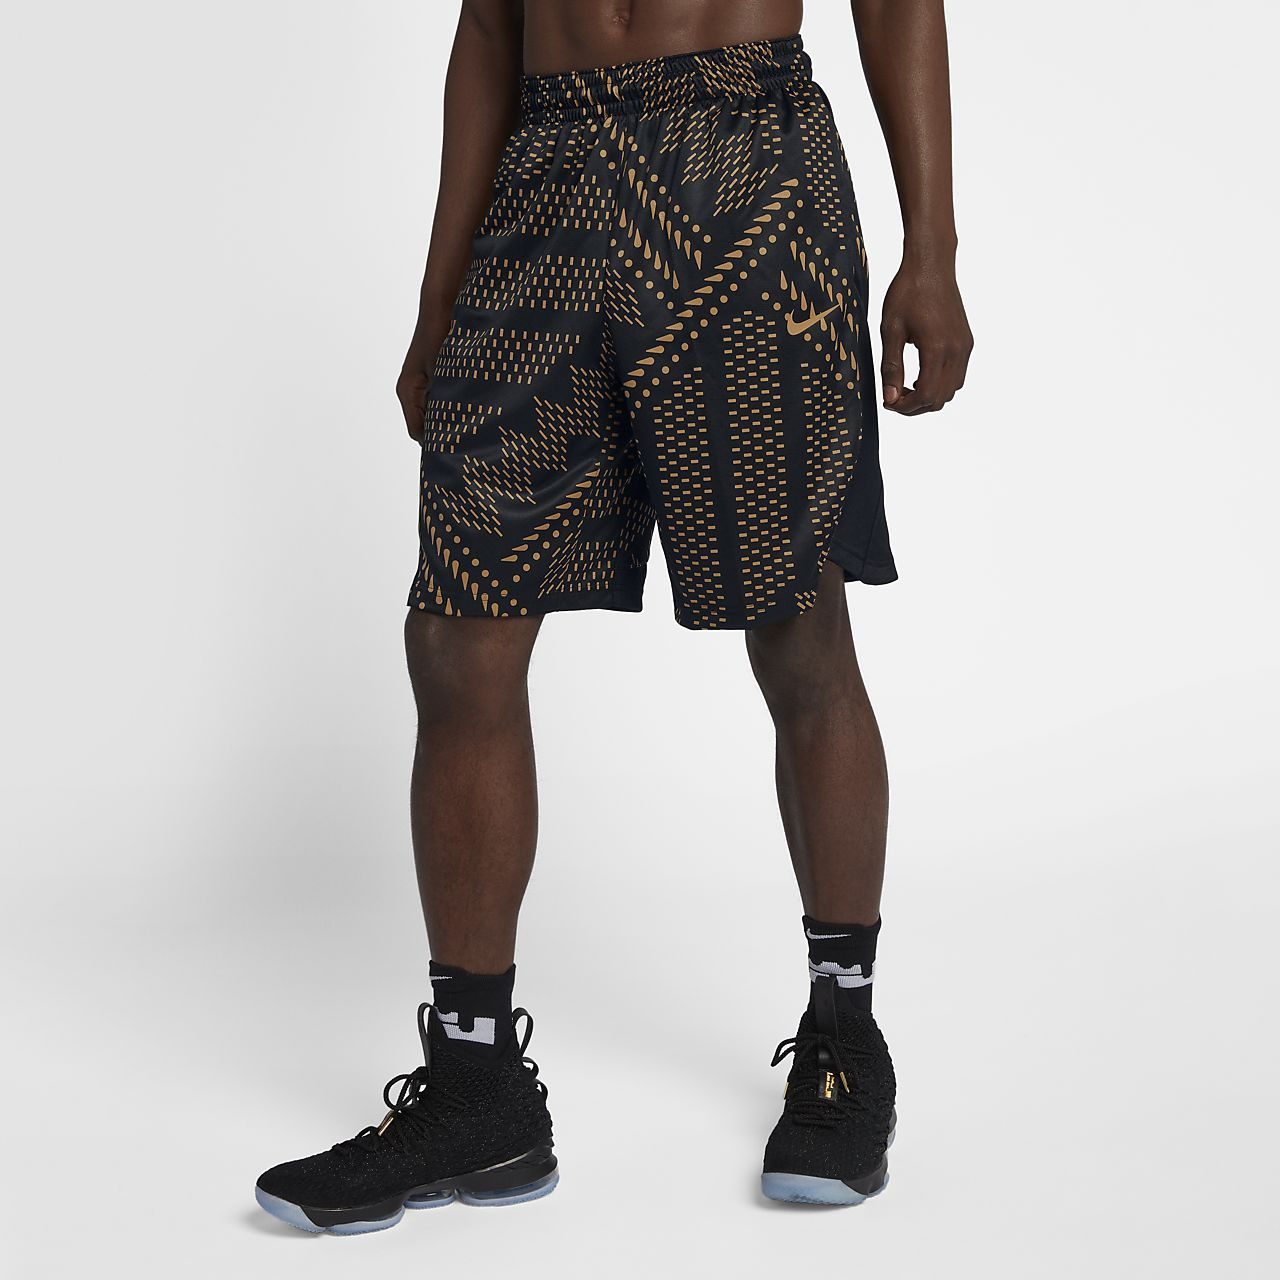 Nike LeBron Dri-FIT Elite Mens 10